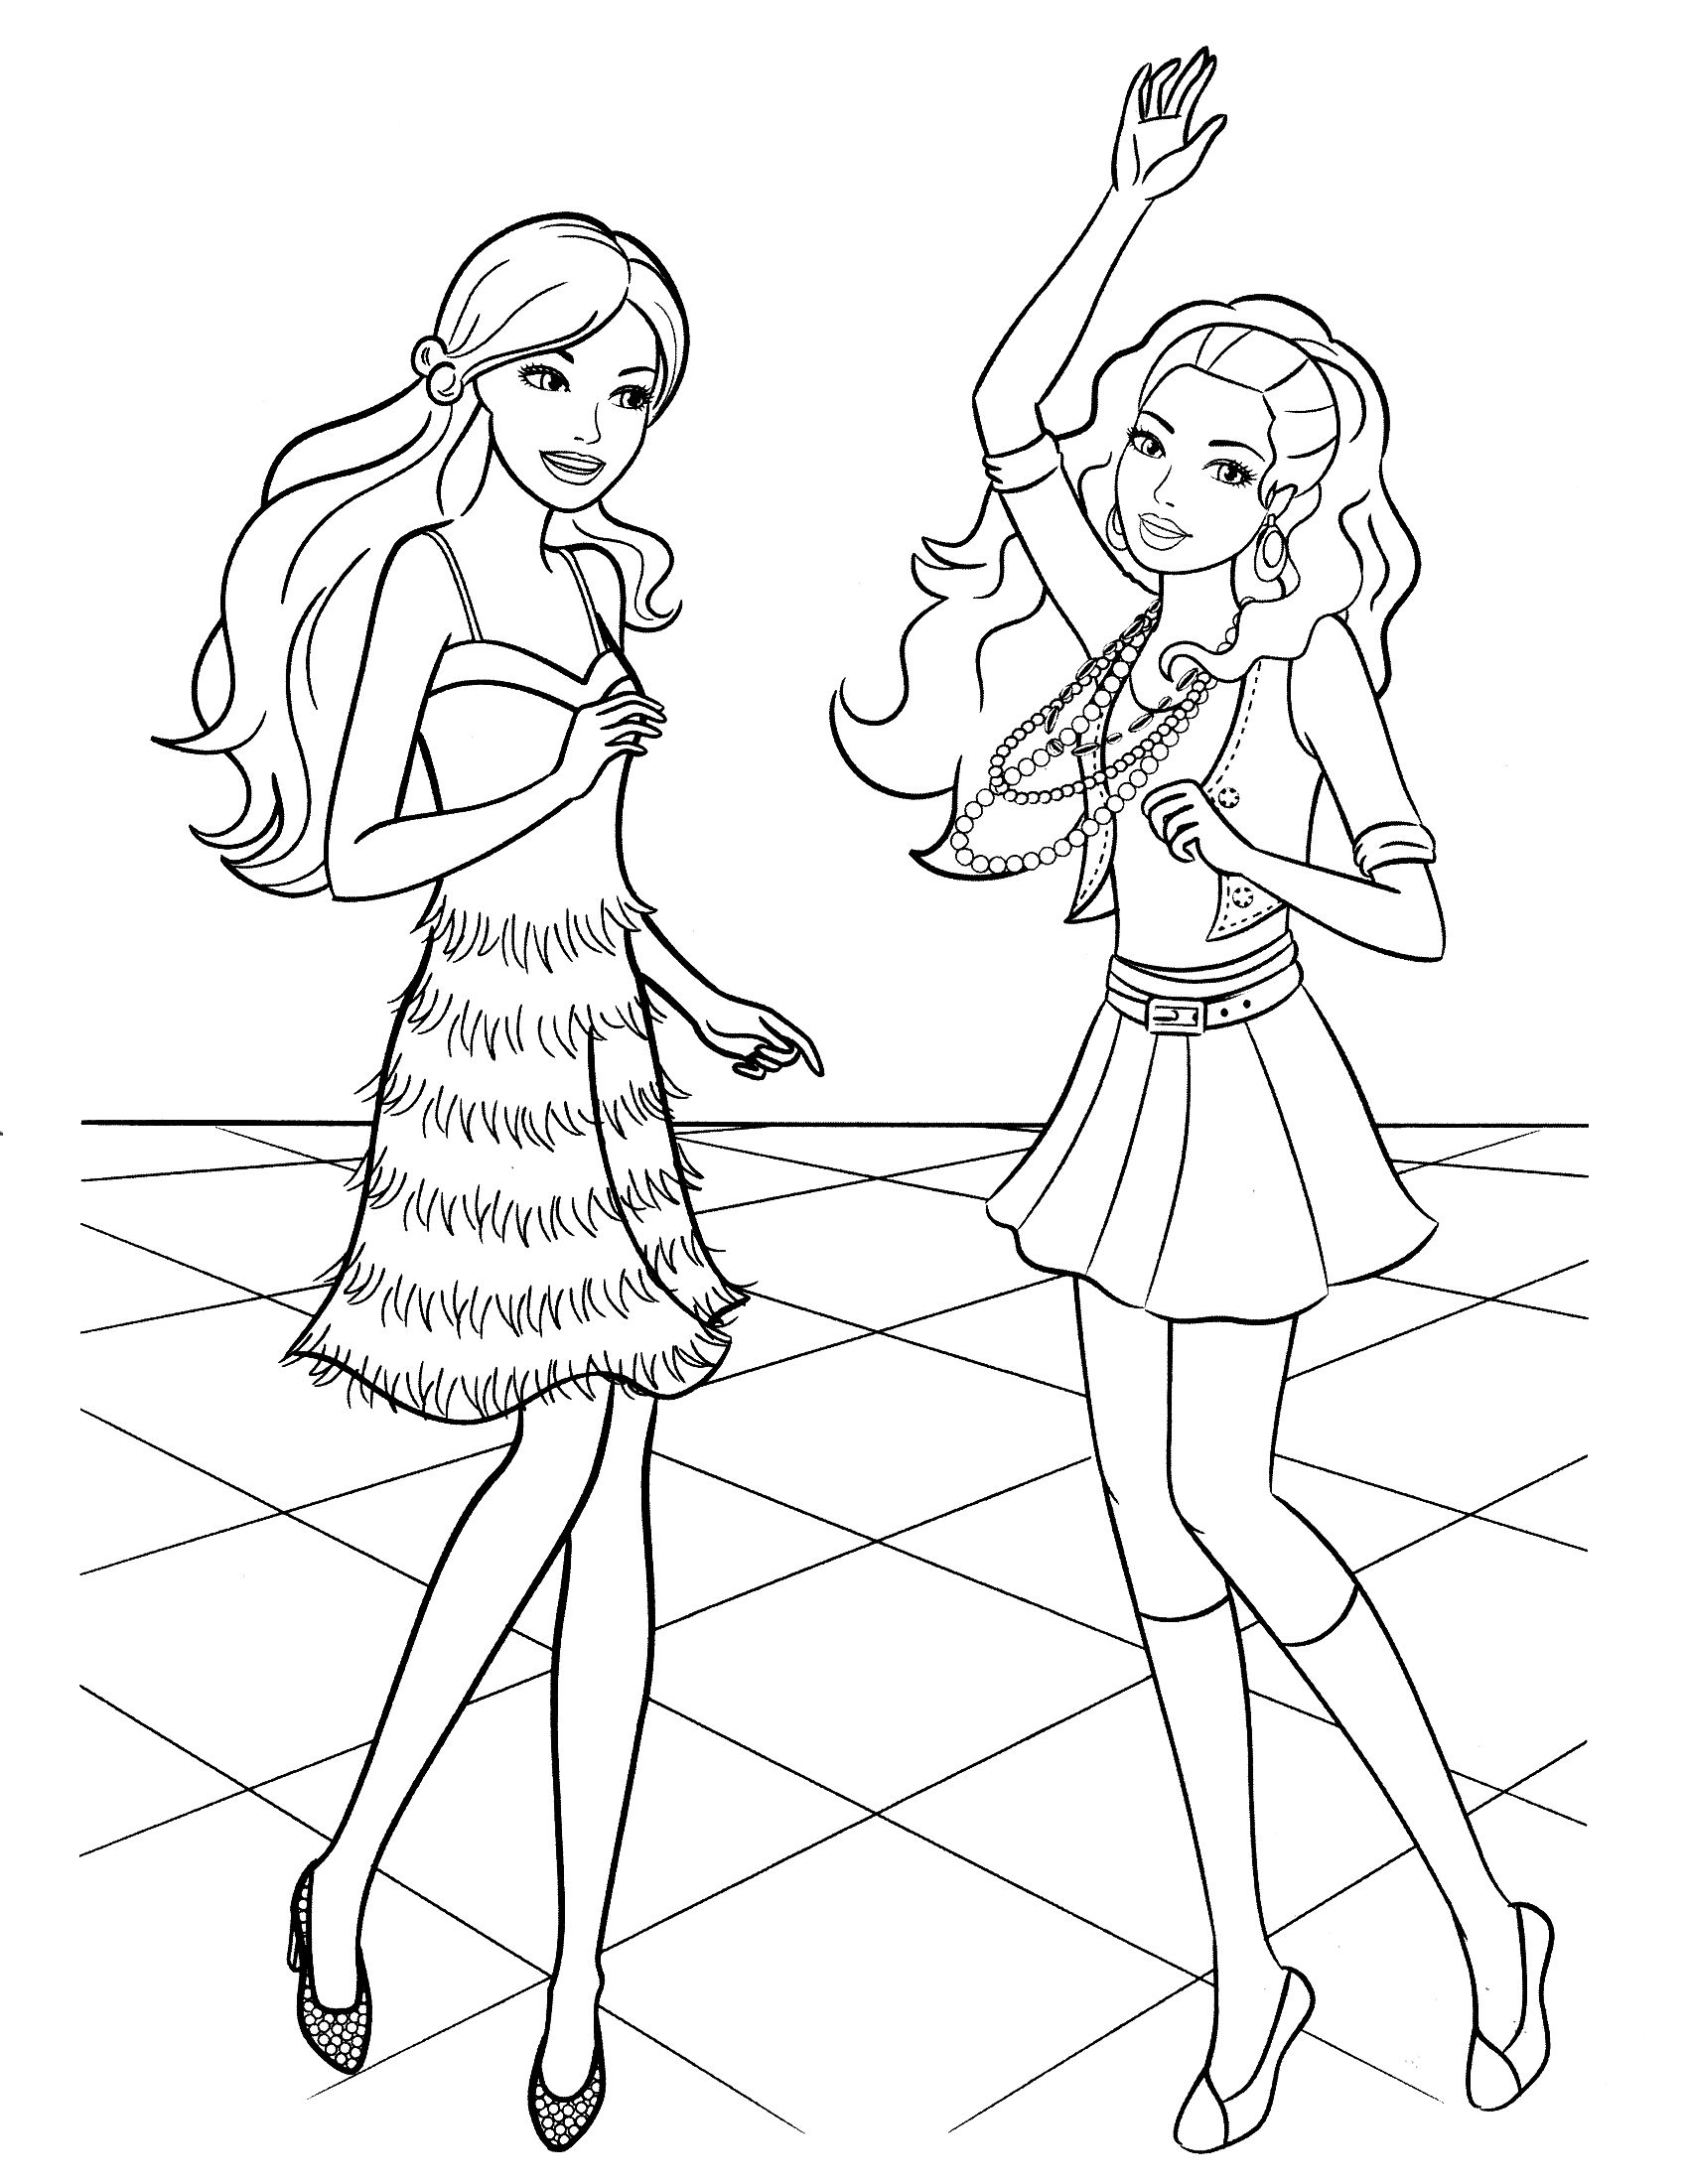 Ausmalbilder Barbie Rockstar Camp : Barbie Coloring Pages Coloring Kifest K Coloring Pinterest